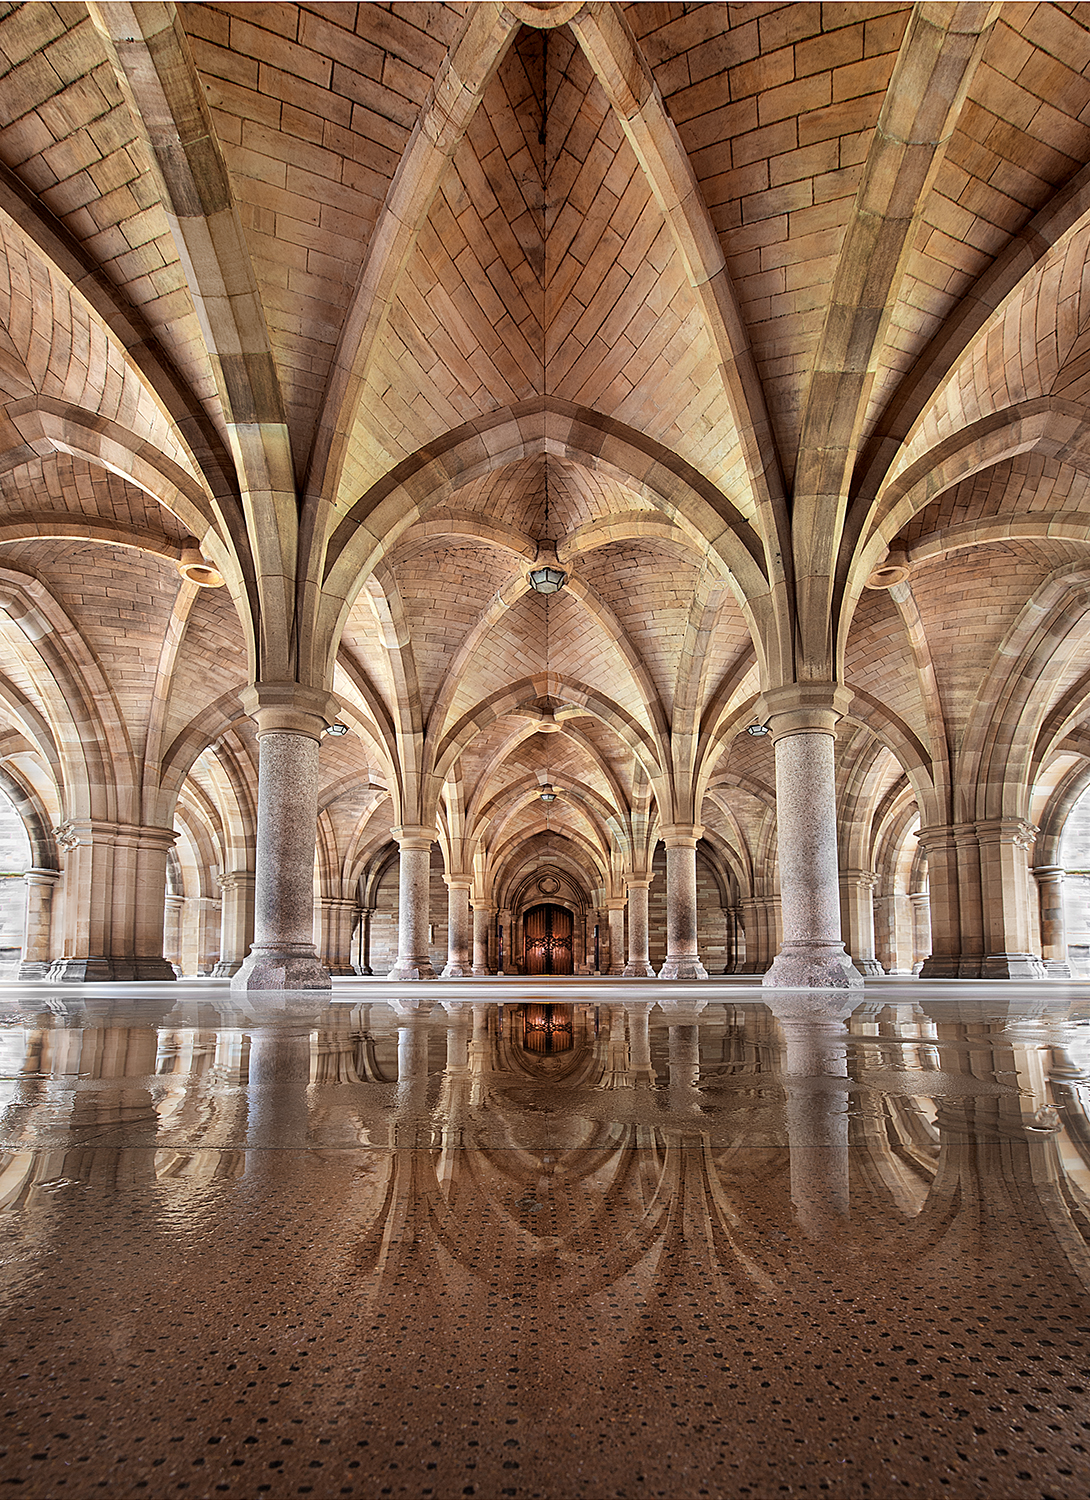 Glasgow University Cloisters